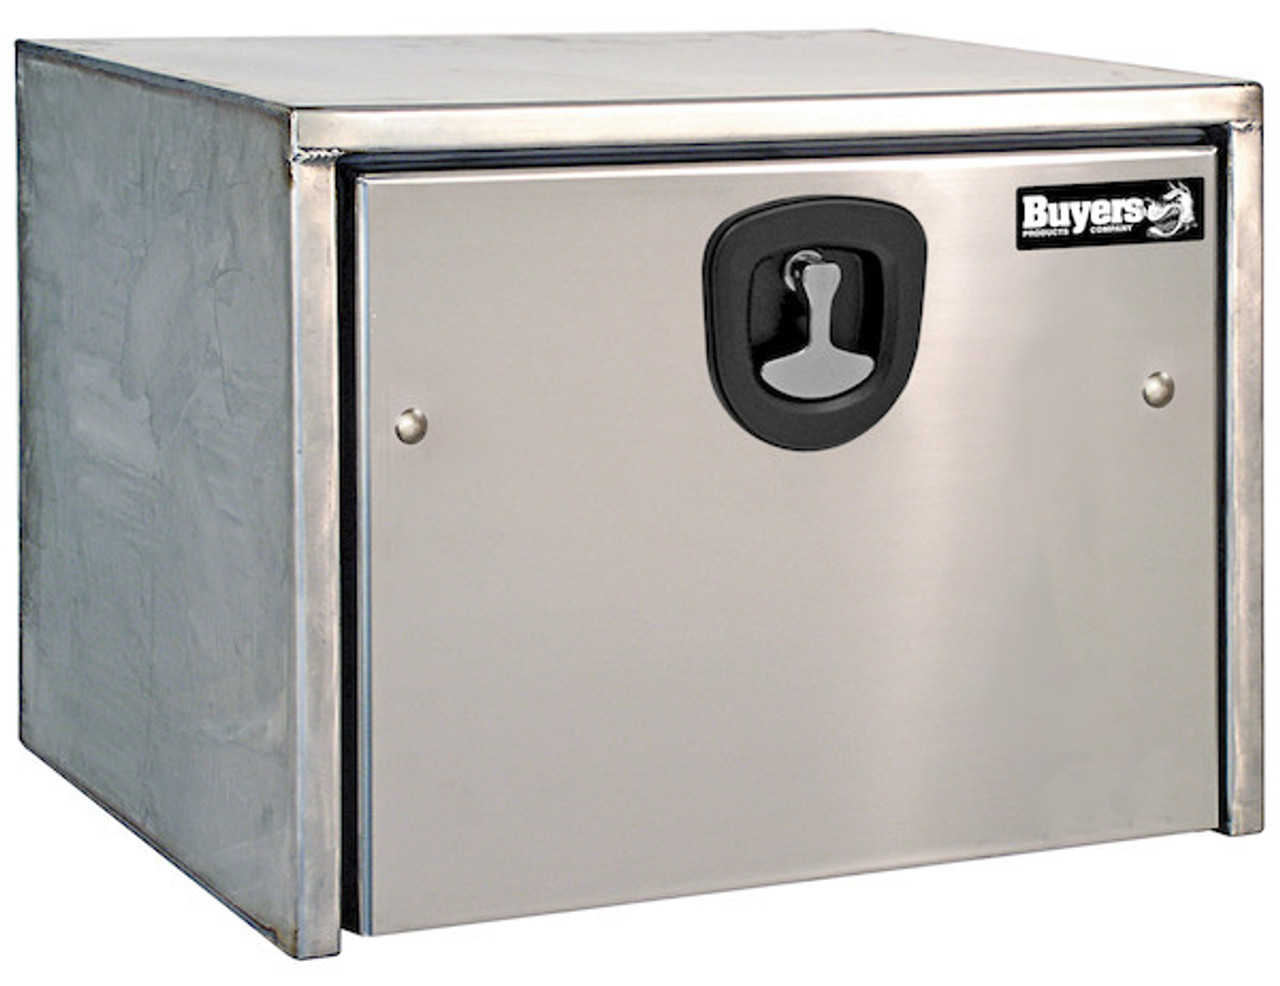 1702603 BUYERS PRODUCTS STAINLESS STEEL UNDERBODY TRUCK BOX WITH POLISHED STAINLESS STEEL DOOR TOOLBOX